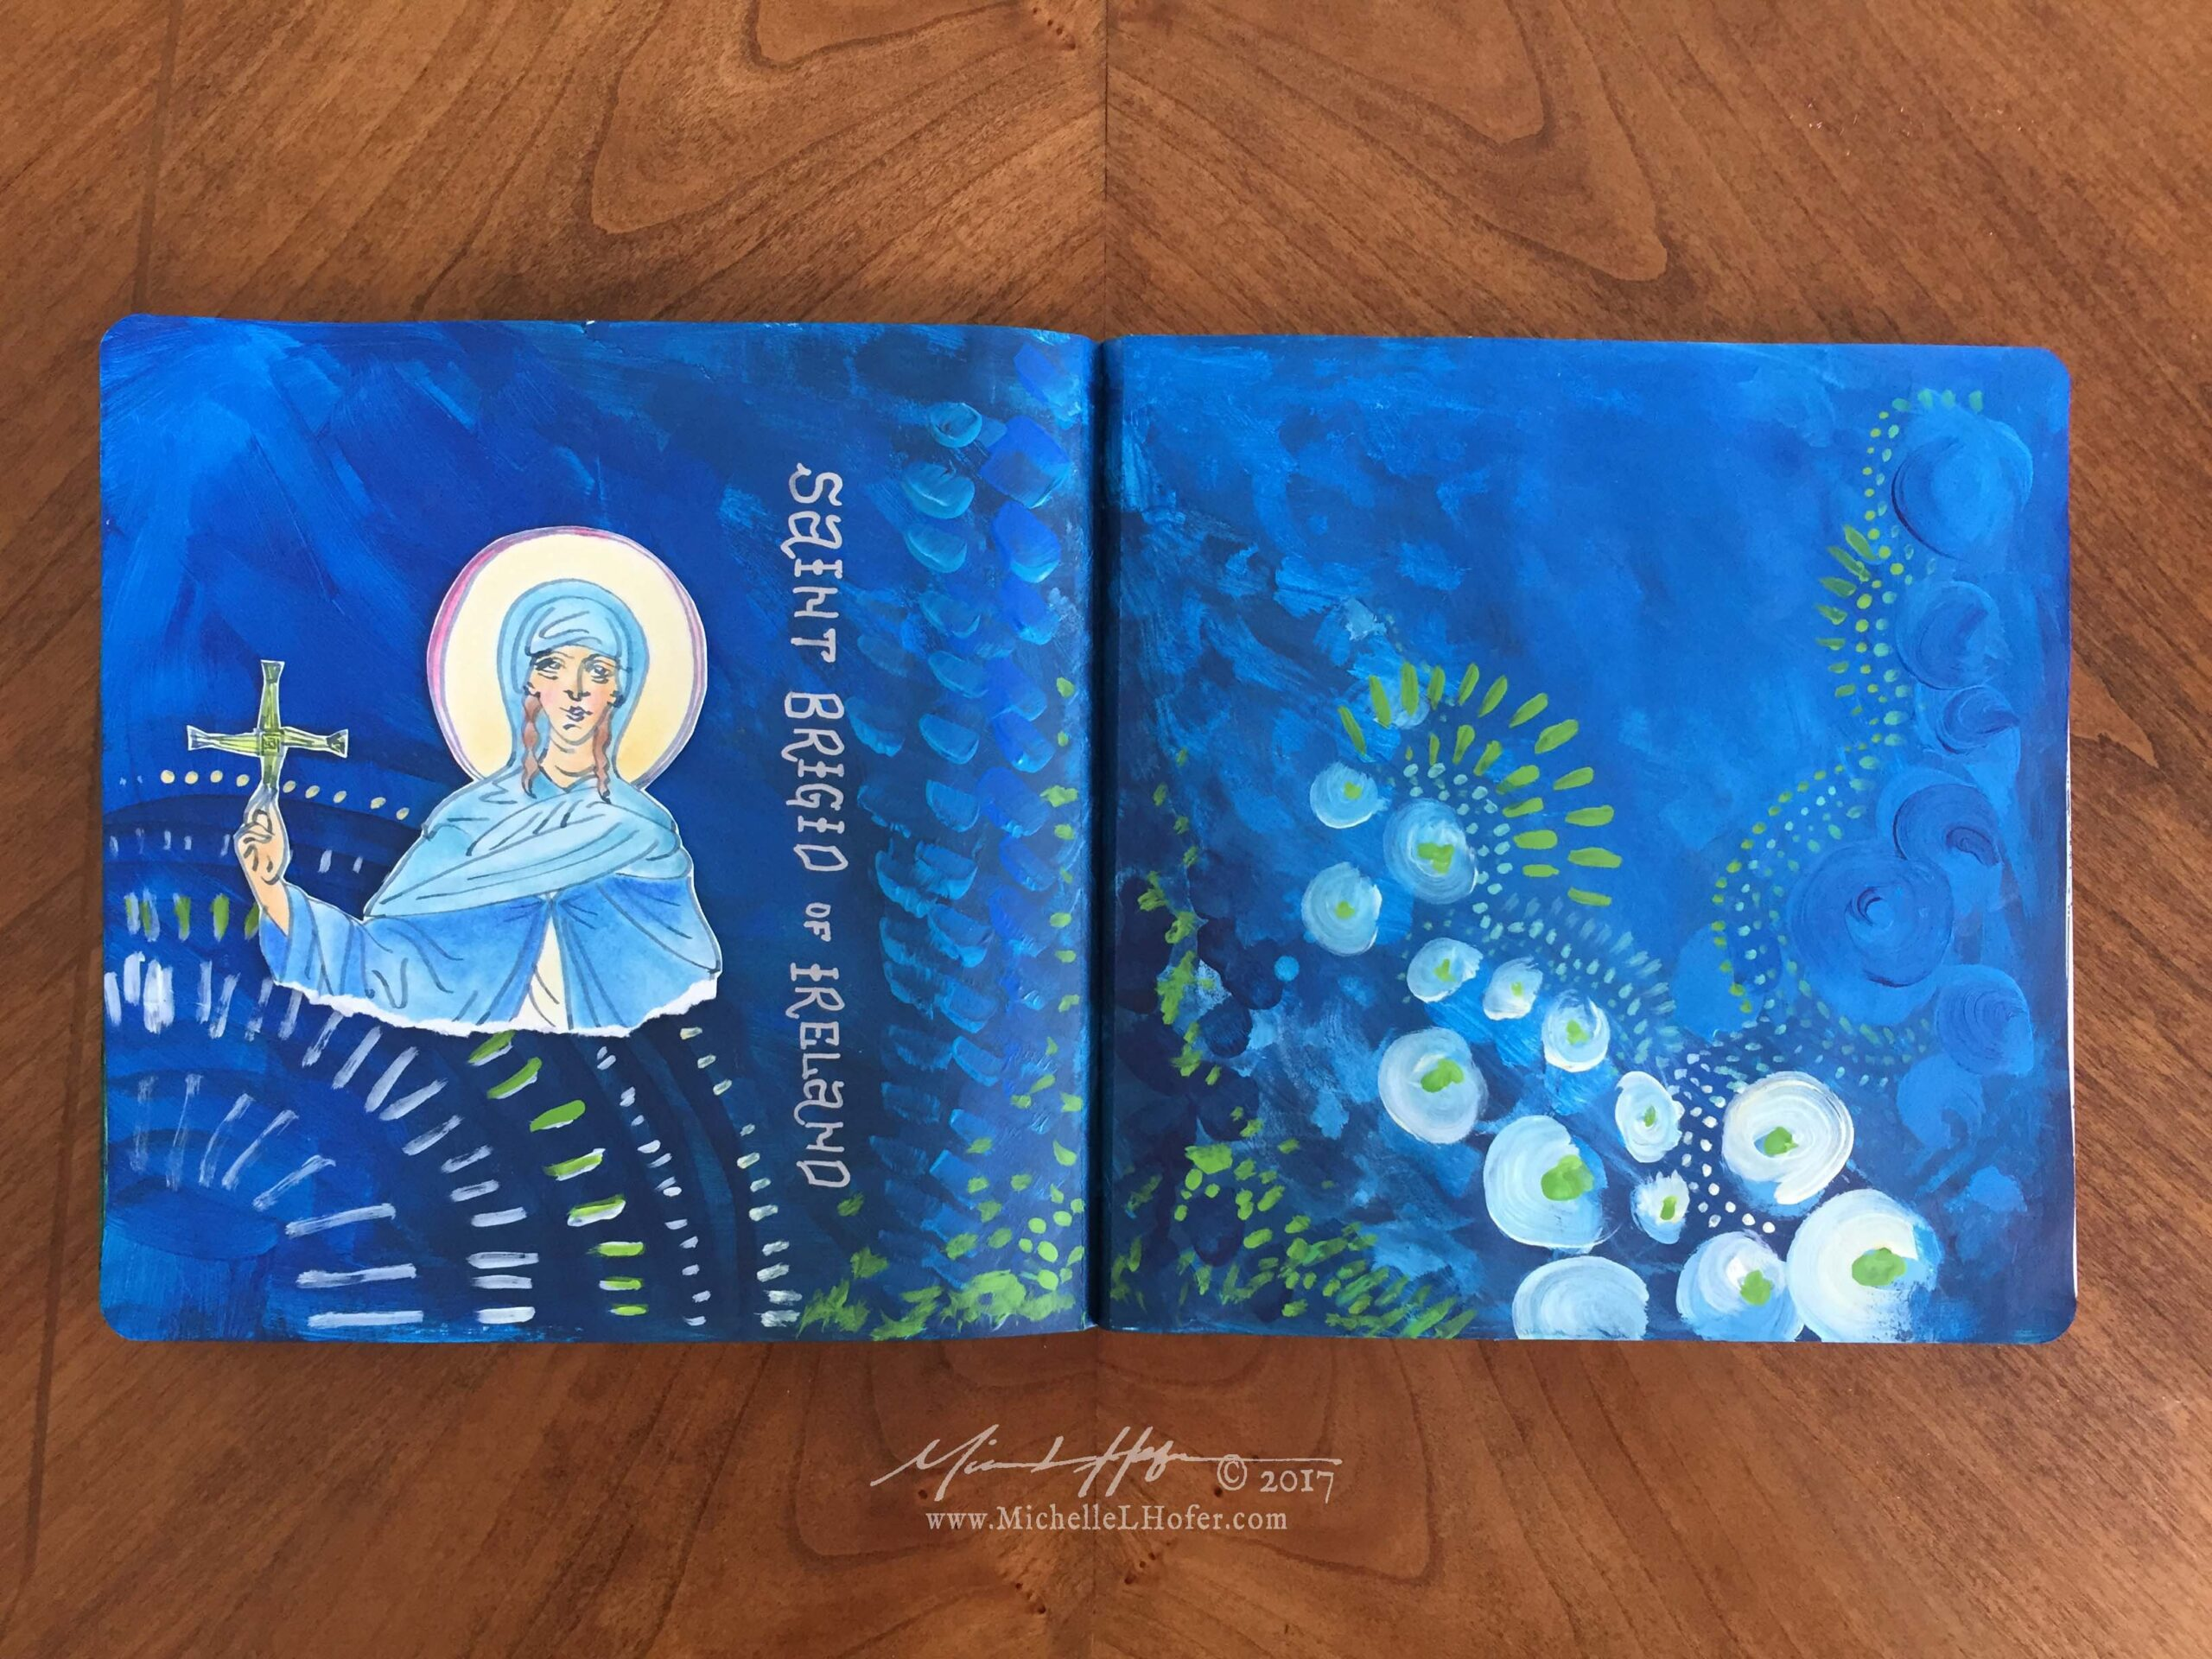 The Generosity of Saint Brigid - Abstract acrylic painted double-page book spread featuring a pen and ink portrait of Saint Brigid of Ireland with hand lettered name from the Book of Saints by Michelle L Hofer.